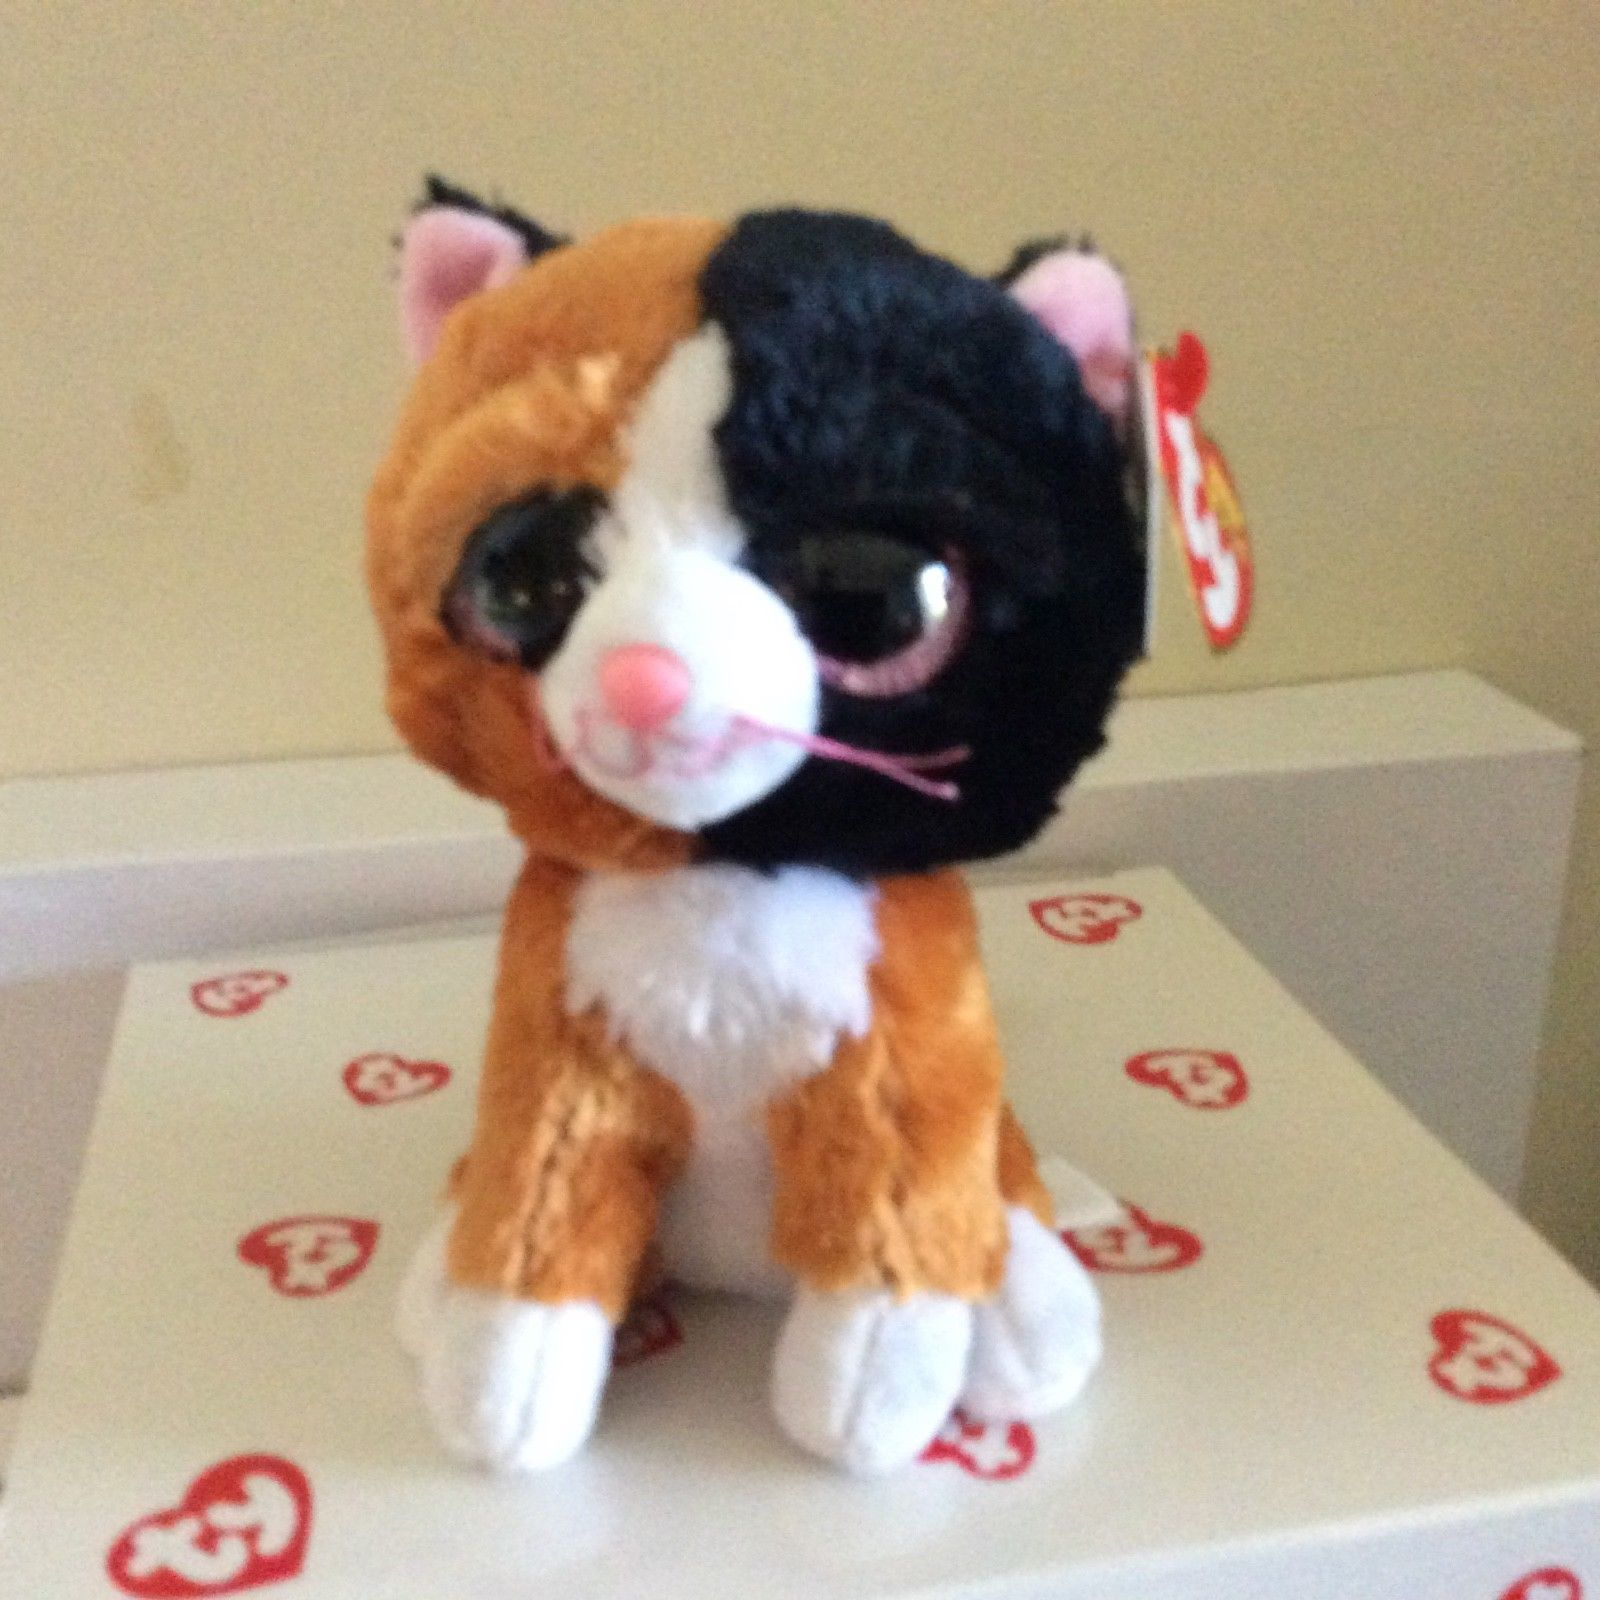 TY BEANIE BABIES BOOS TAURI CAT PLUSH SOFT TOY NEW WITH TAGS